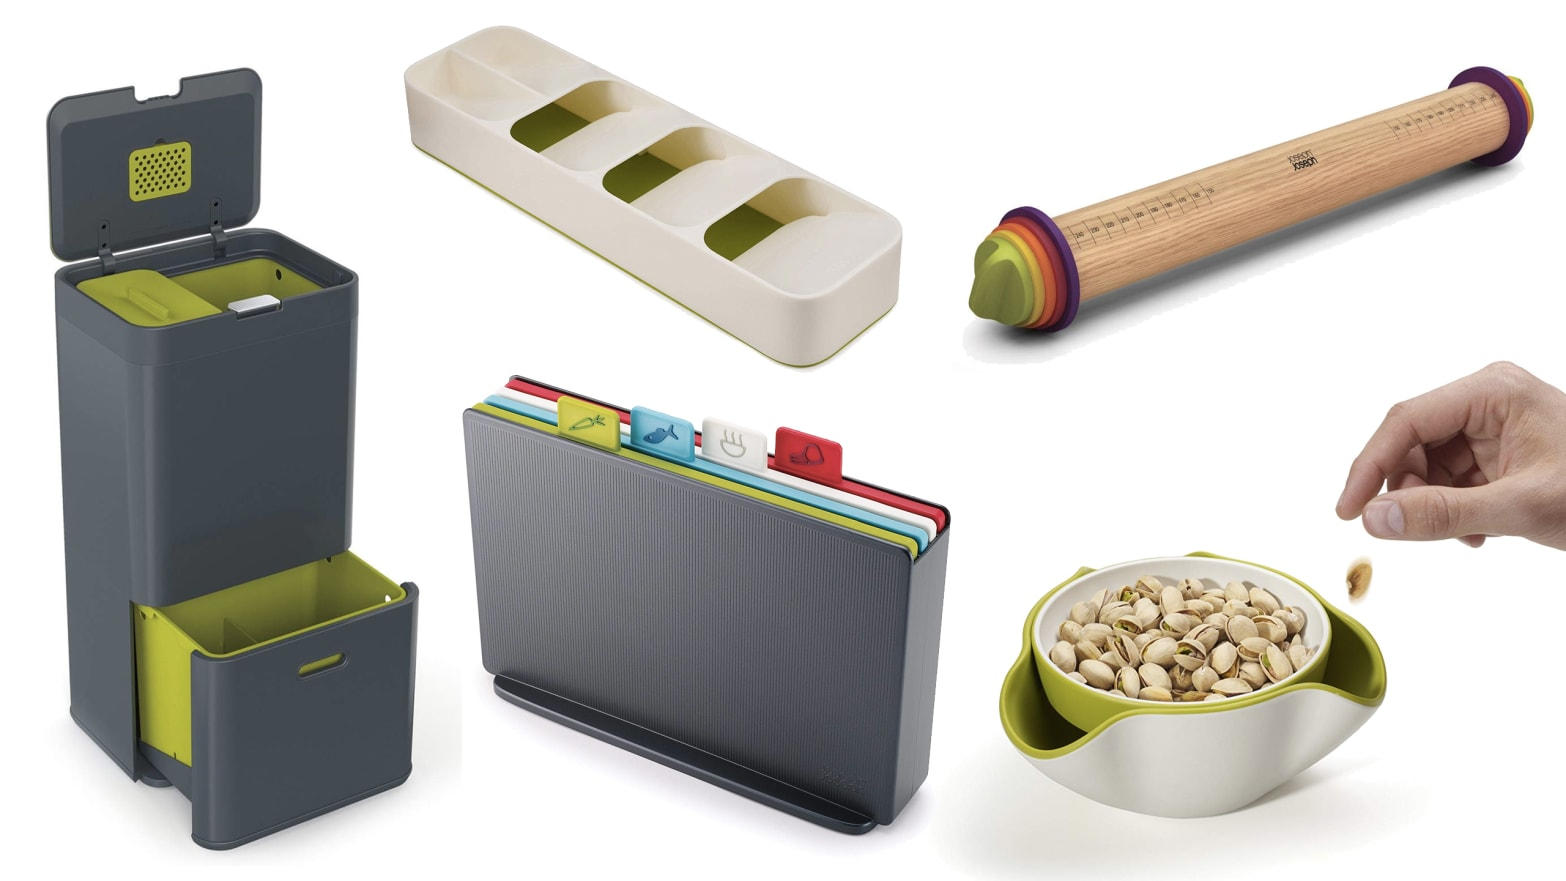 Joseph Joseph Creates Essential, Clever Contraptions to Keep Your Kitchen Organized